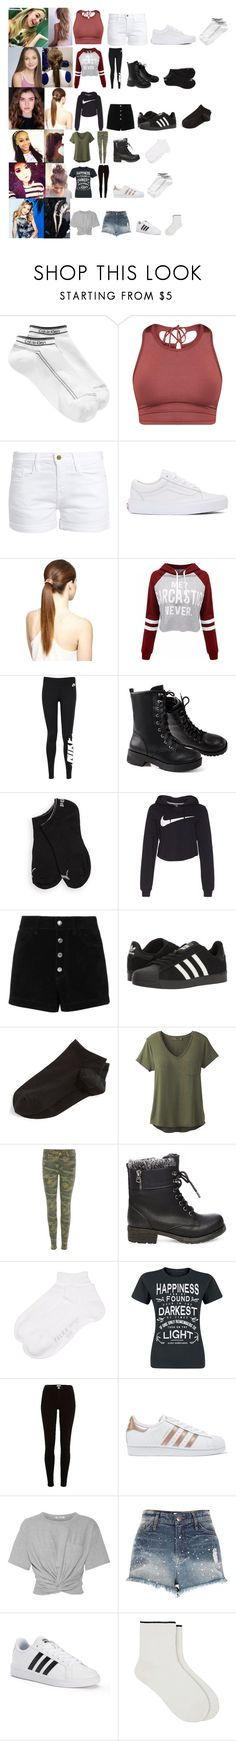 """""""Dance Class. (( RTD ))"""" by the-walking-dead-and-wwe-lover ❤ liked on Polyvore featuring Calvin Klein, Frame, Vans, WithChic, NIKE, Puma, rag & bone/JEAN, adidas, Wolford and prAna"""